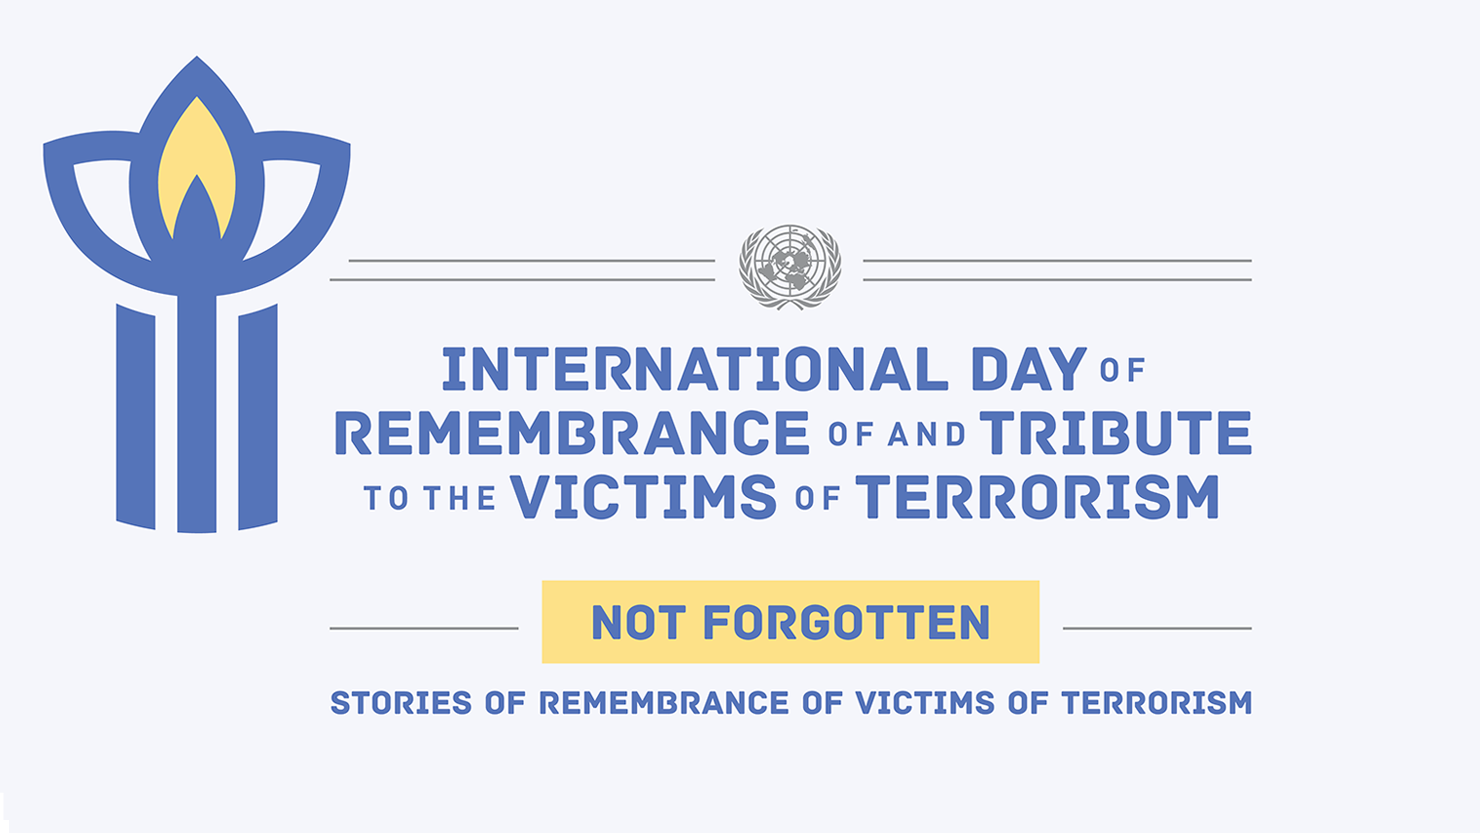 Graphic of International Day of Remembrance